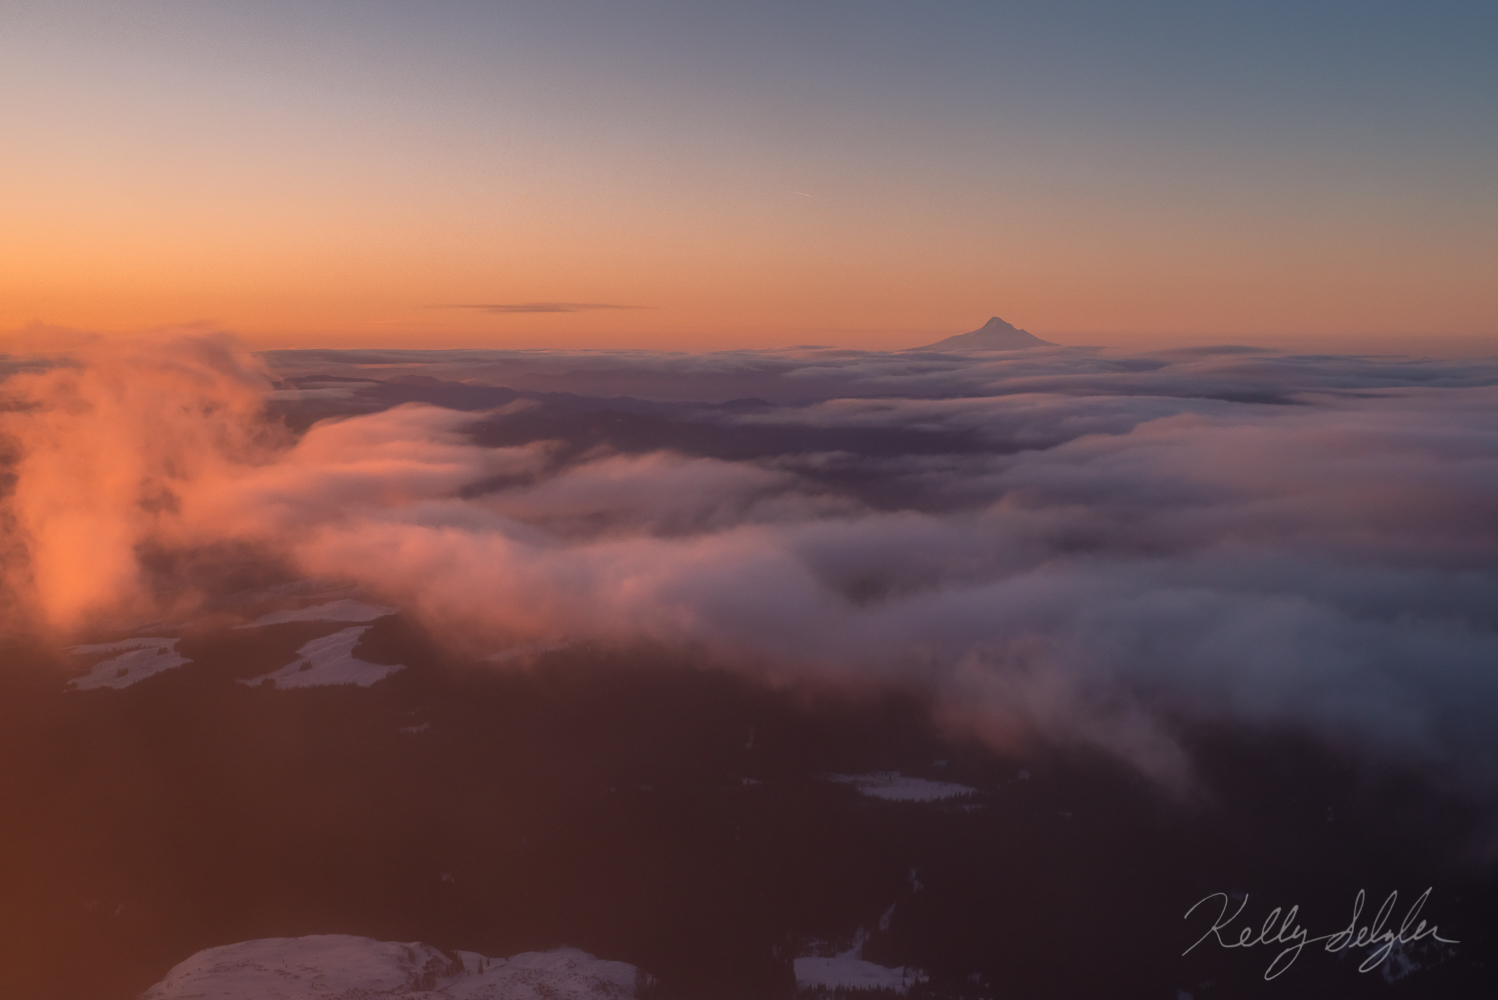 As I was climbing Mt. St. Helens and fighting the torrential winds, I turned around and saw this beautiful sunrise looking towards...